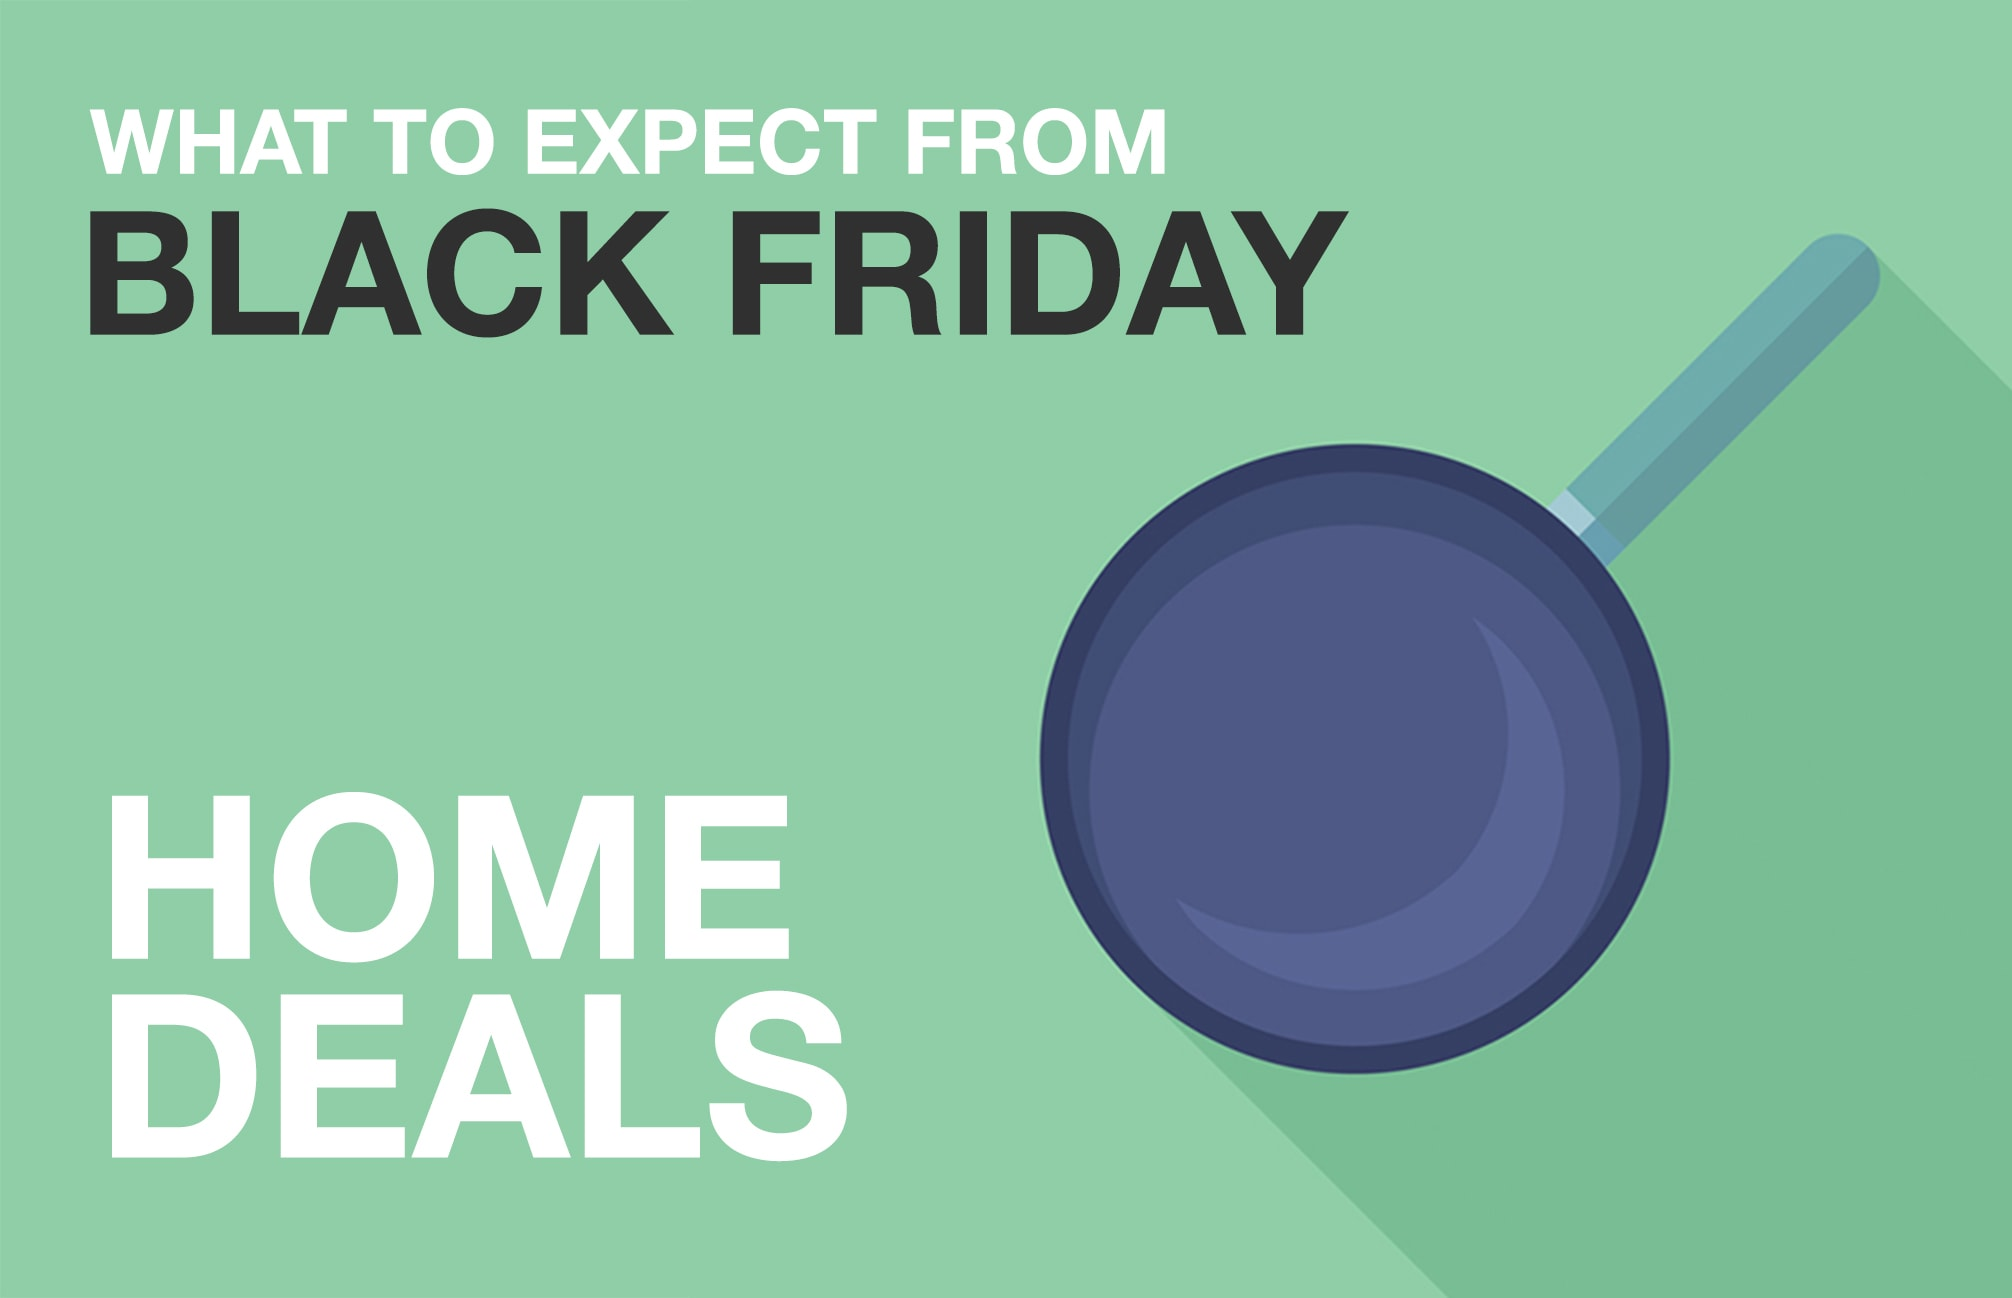 Black Friday Home Goods Predictions 2017: Kitchen Gadgets Fall to $8